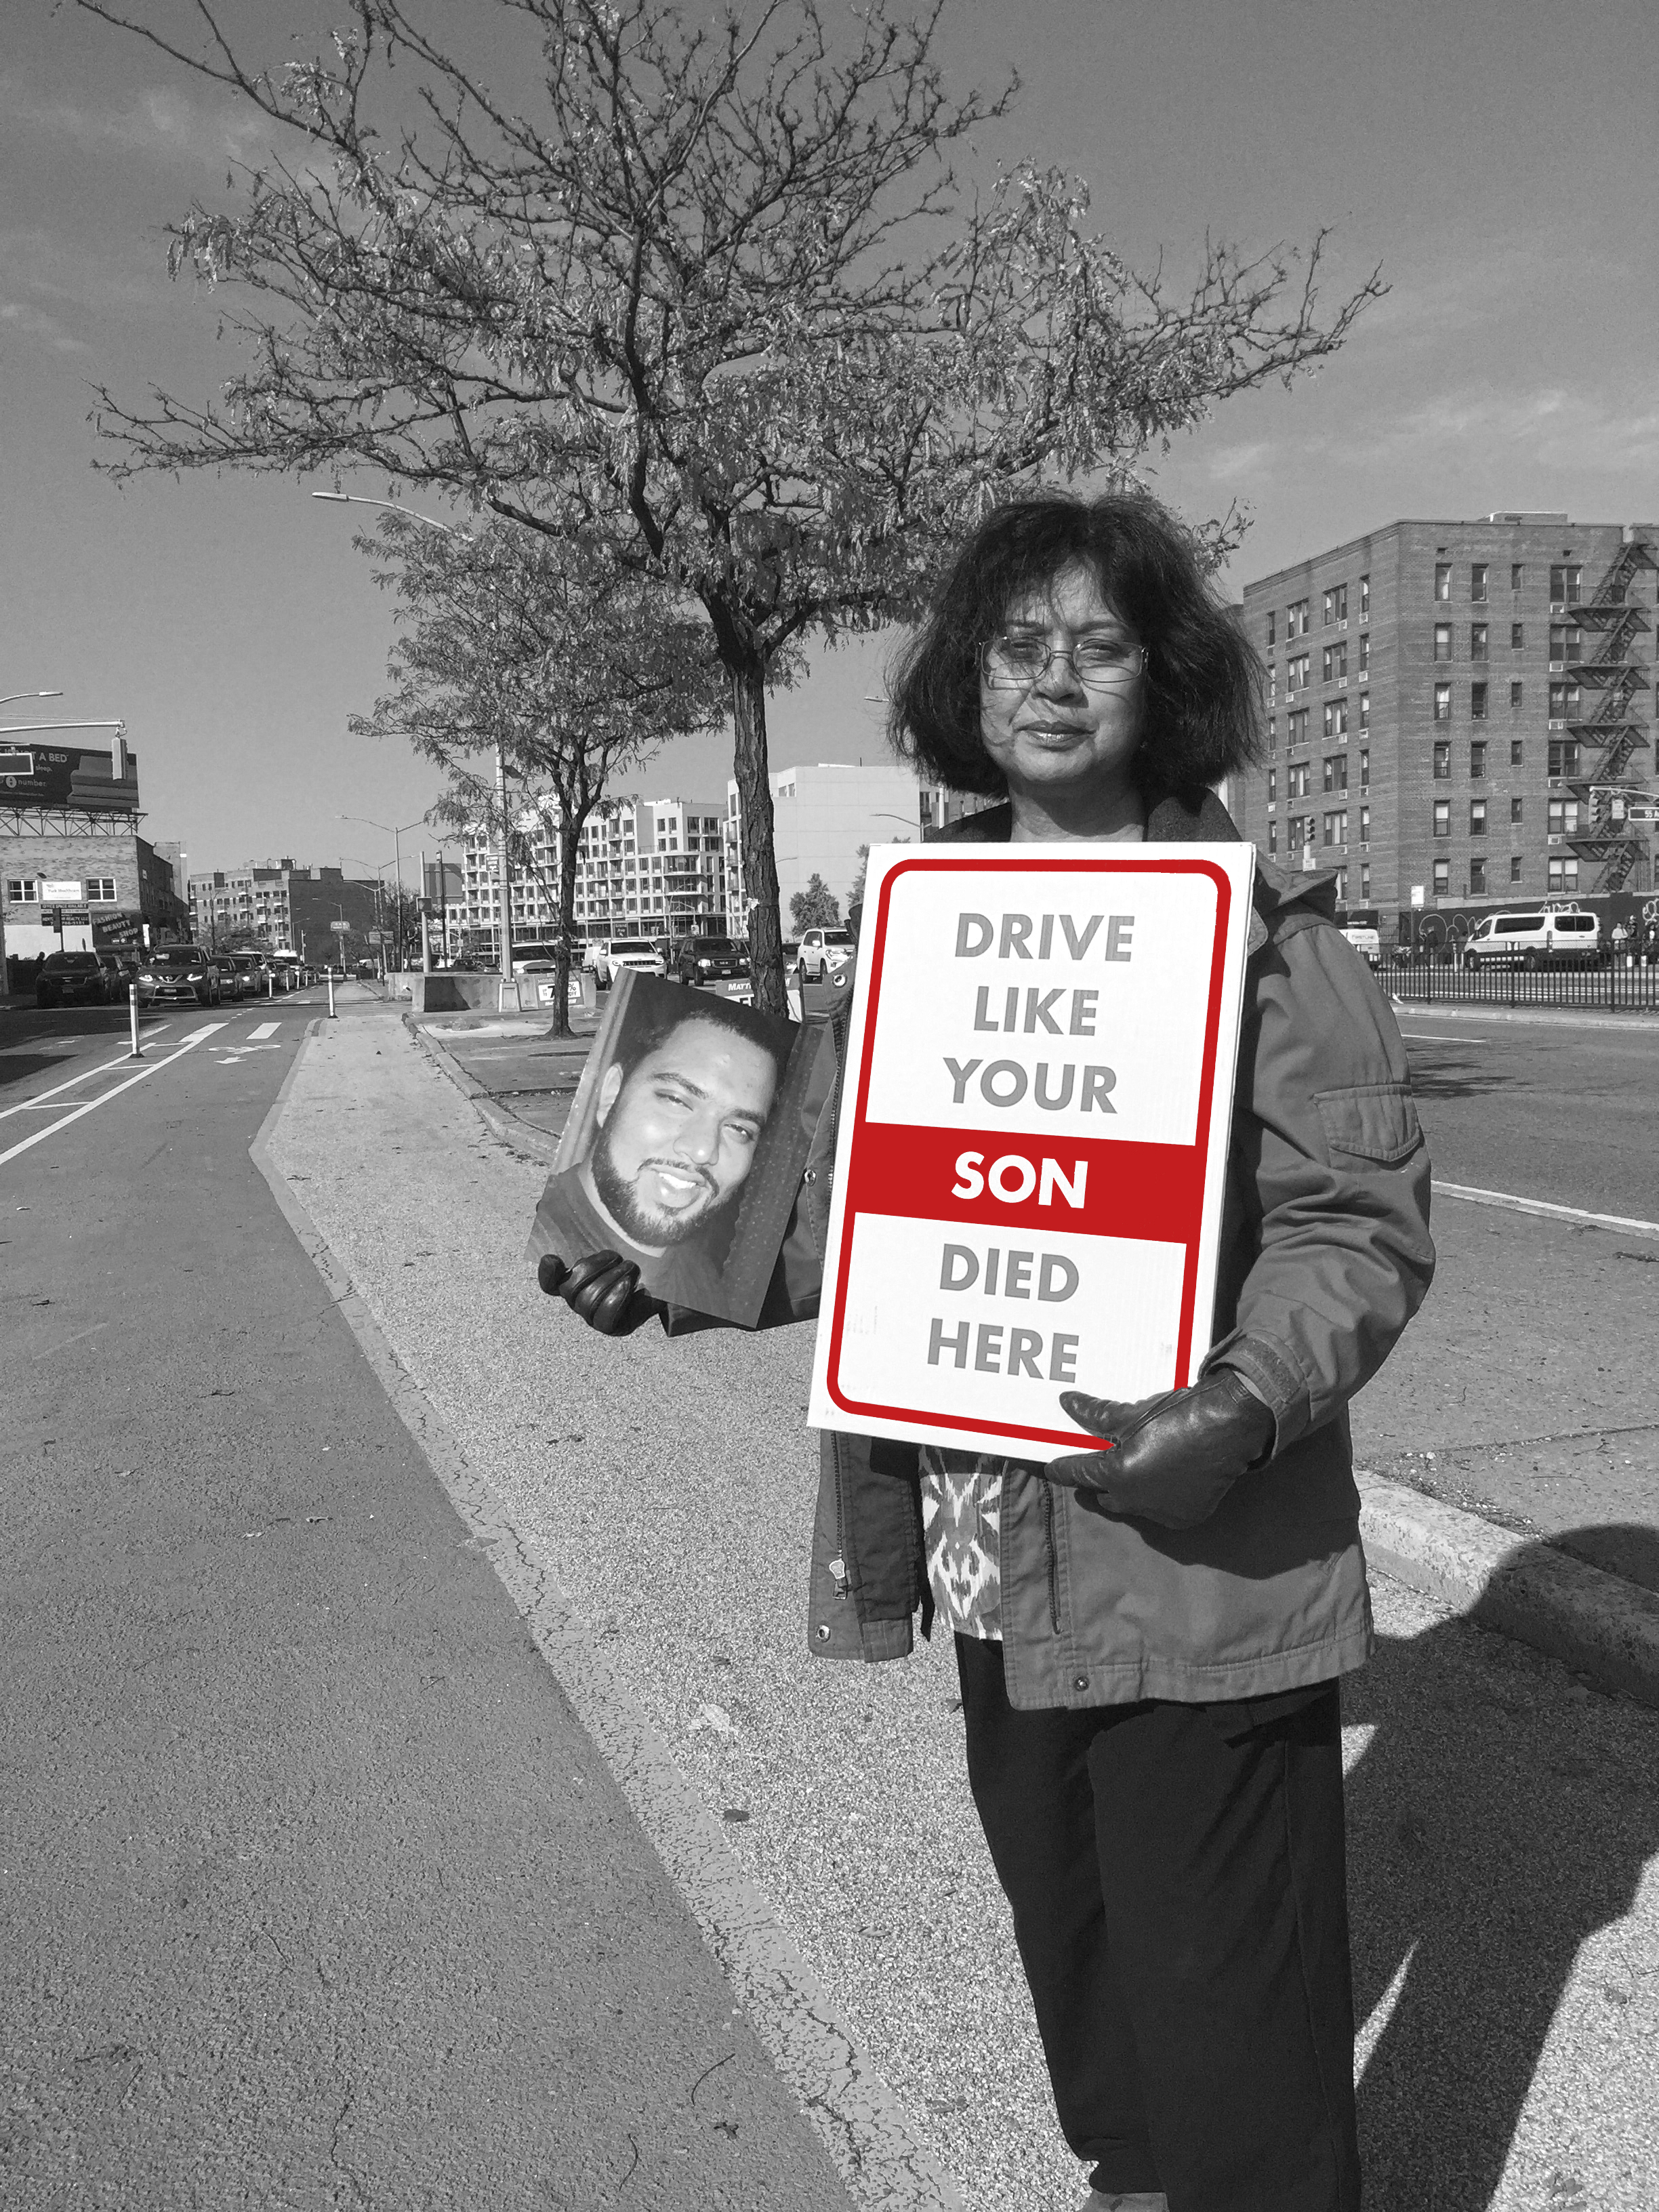 LIZI RAHMAN, ASIF'S MOTHER, ASKS YOU TO DRIVE LIKE YOUR SON DIED HERE. HERS DID.